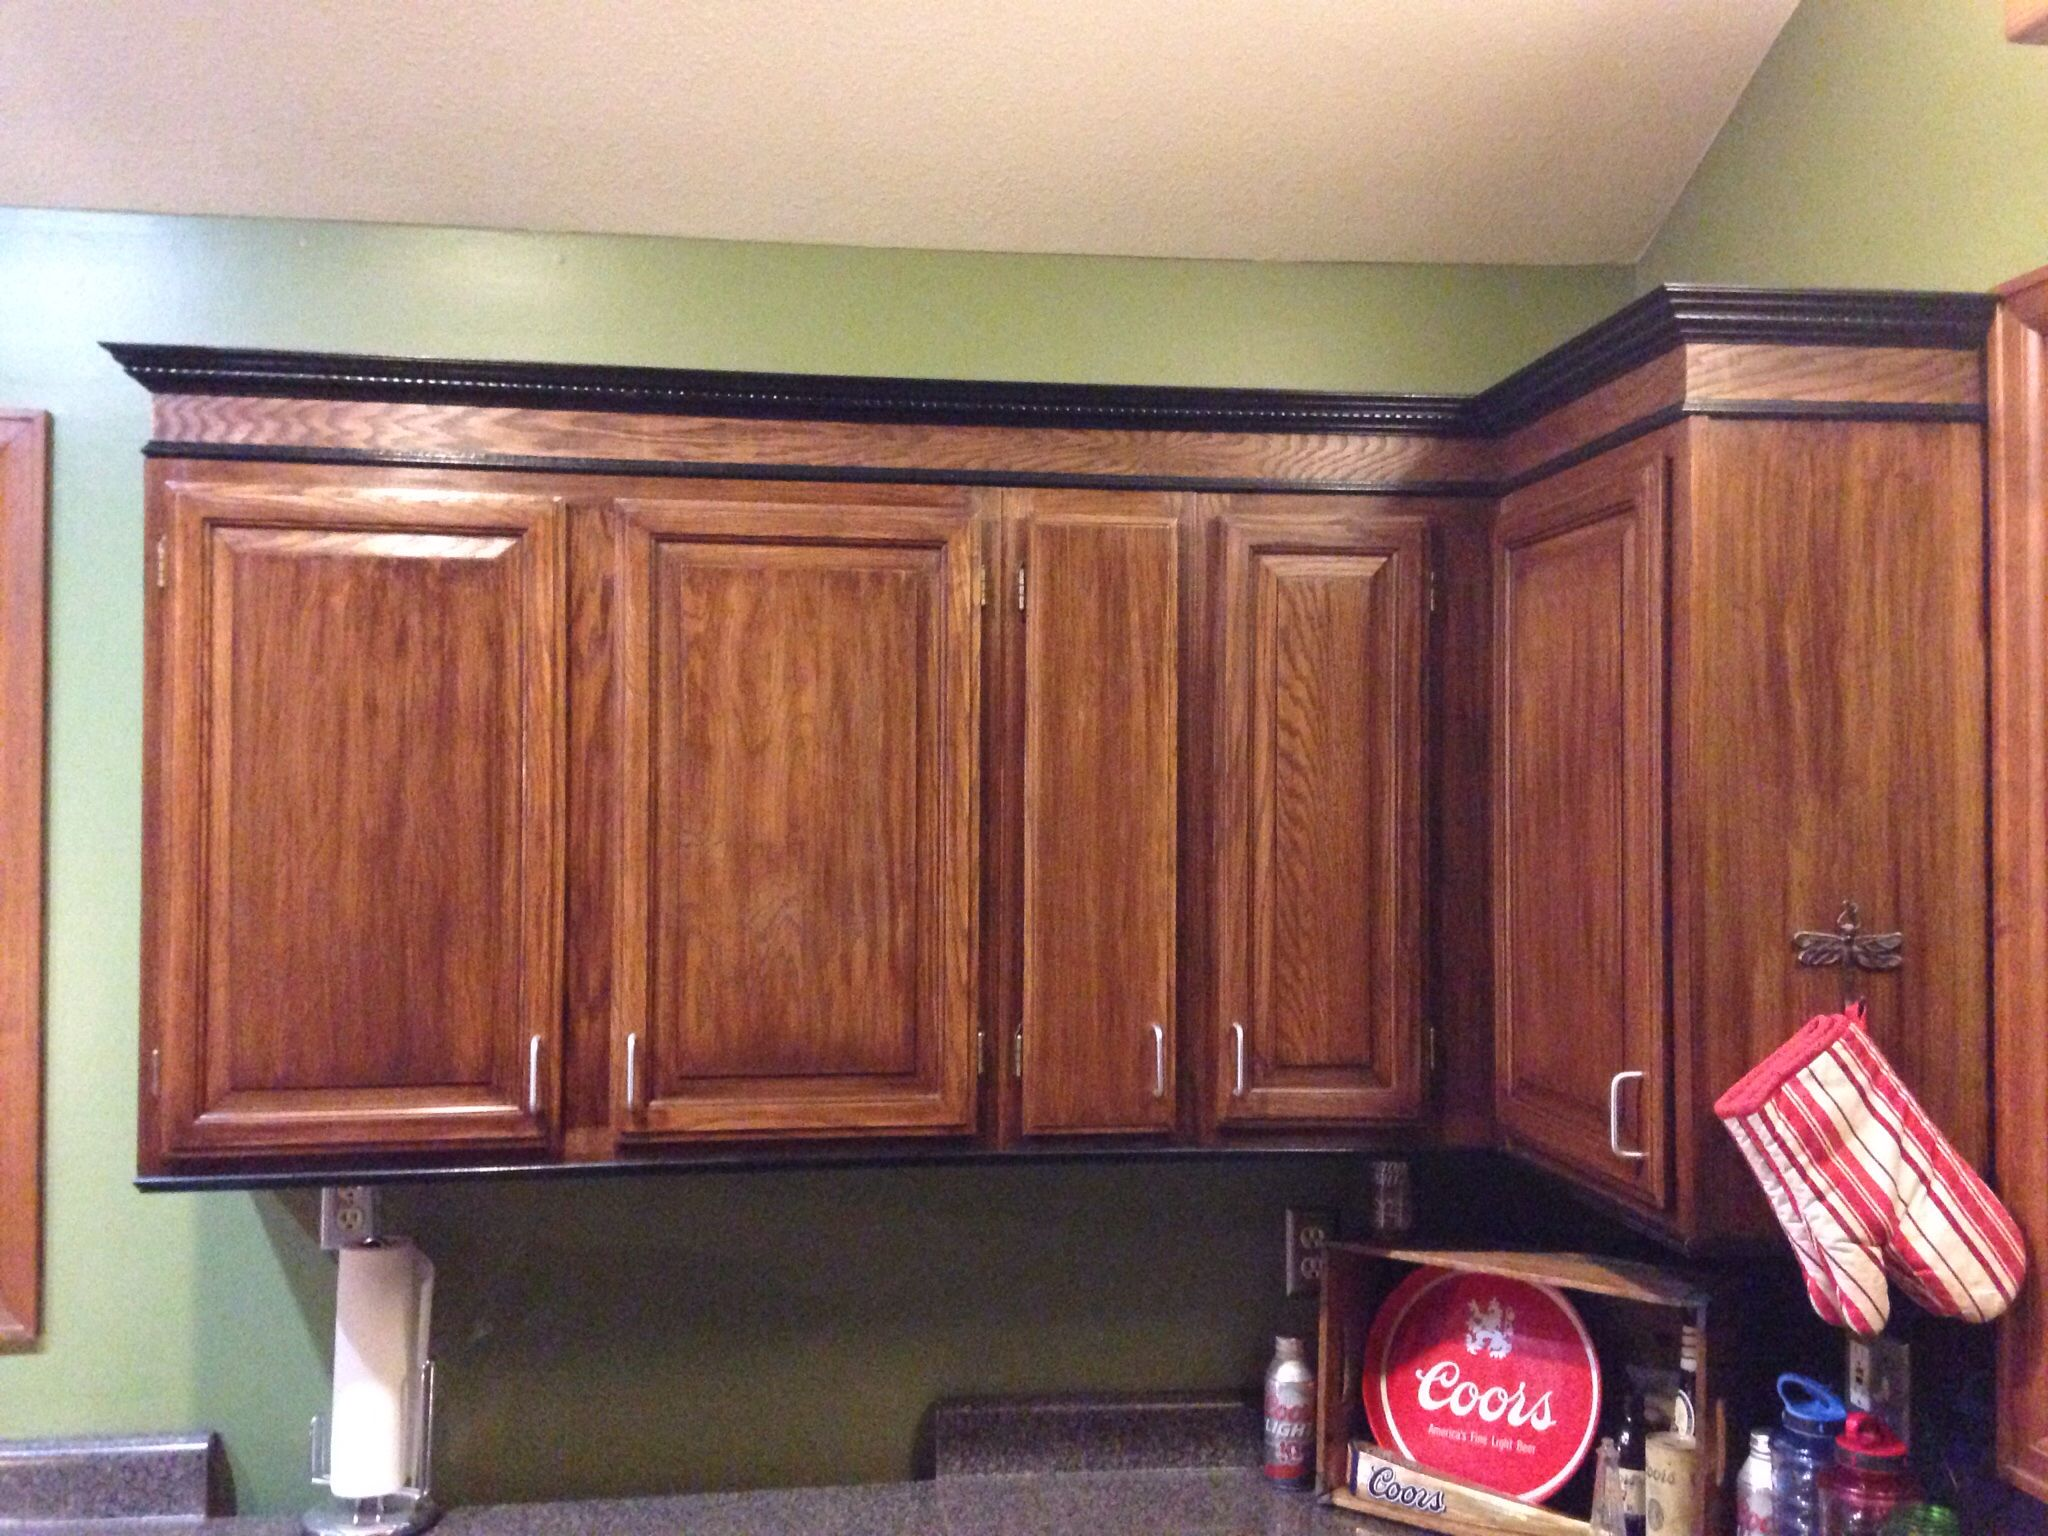 Just Stained The Honey Oak Cabinets Darker And Added Trim To The Top And Bottom Thanks To My Awesome Hub Honey Oak Cabinets Oak Cabinets Painting Oak Cabinets